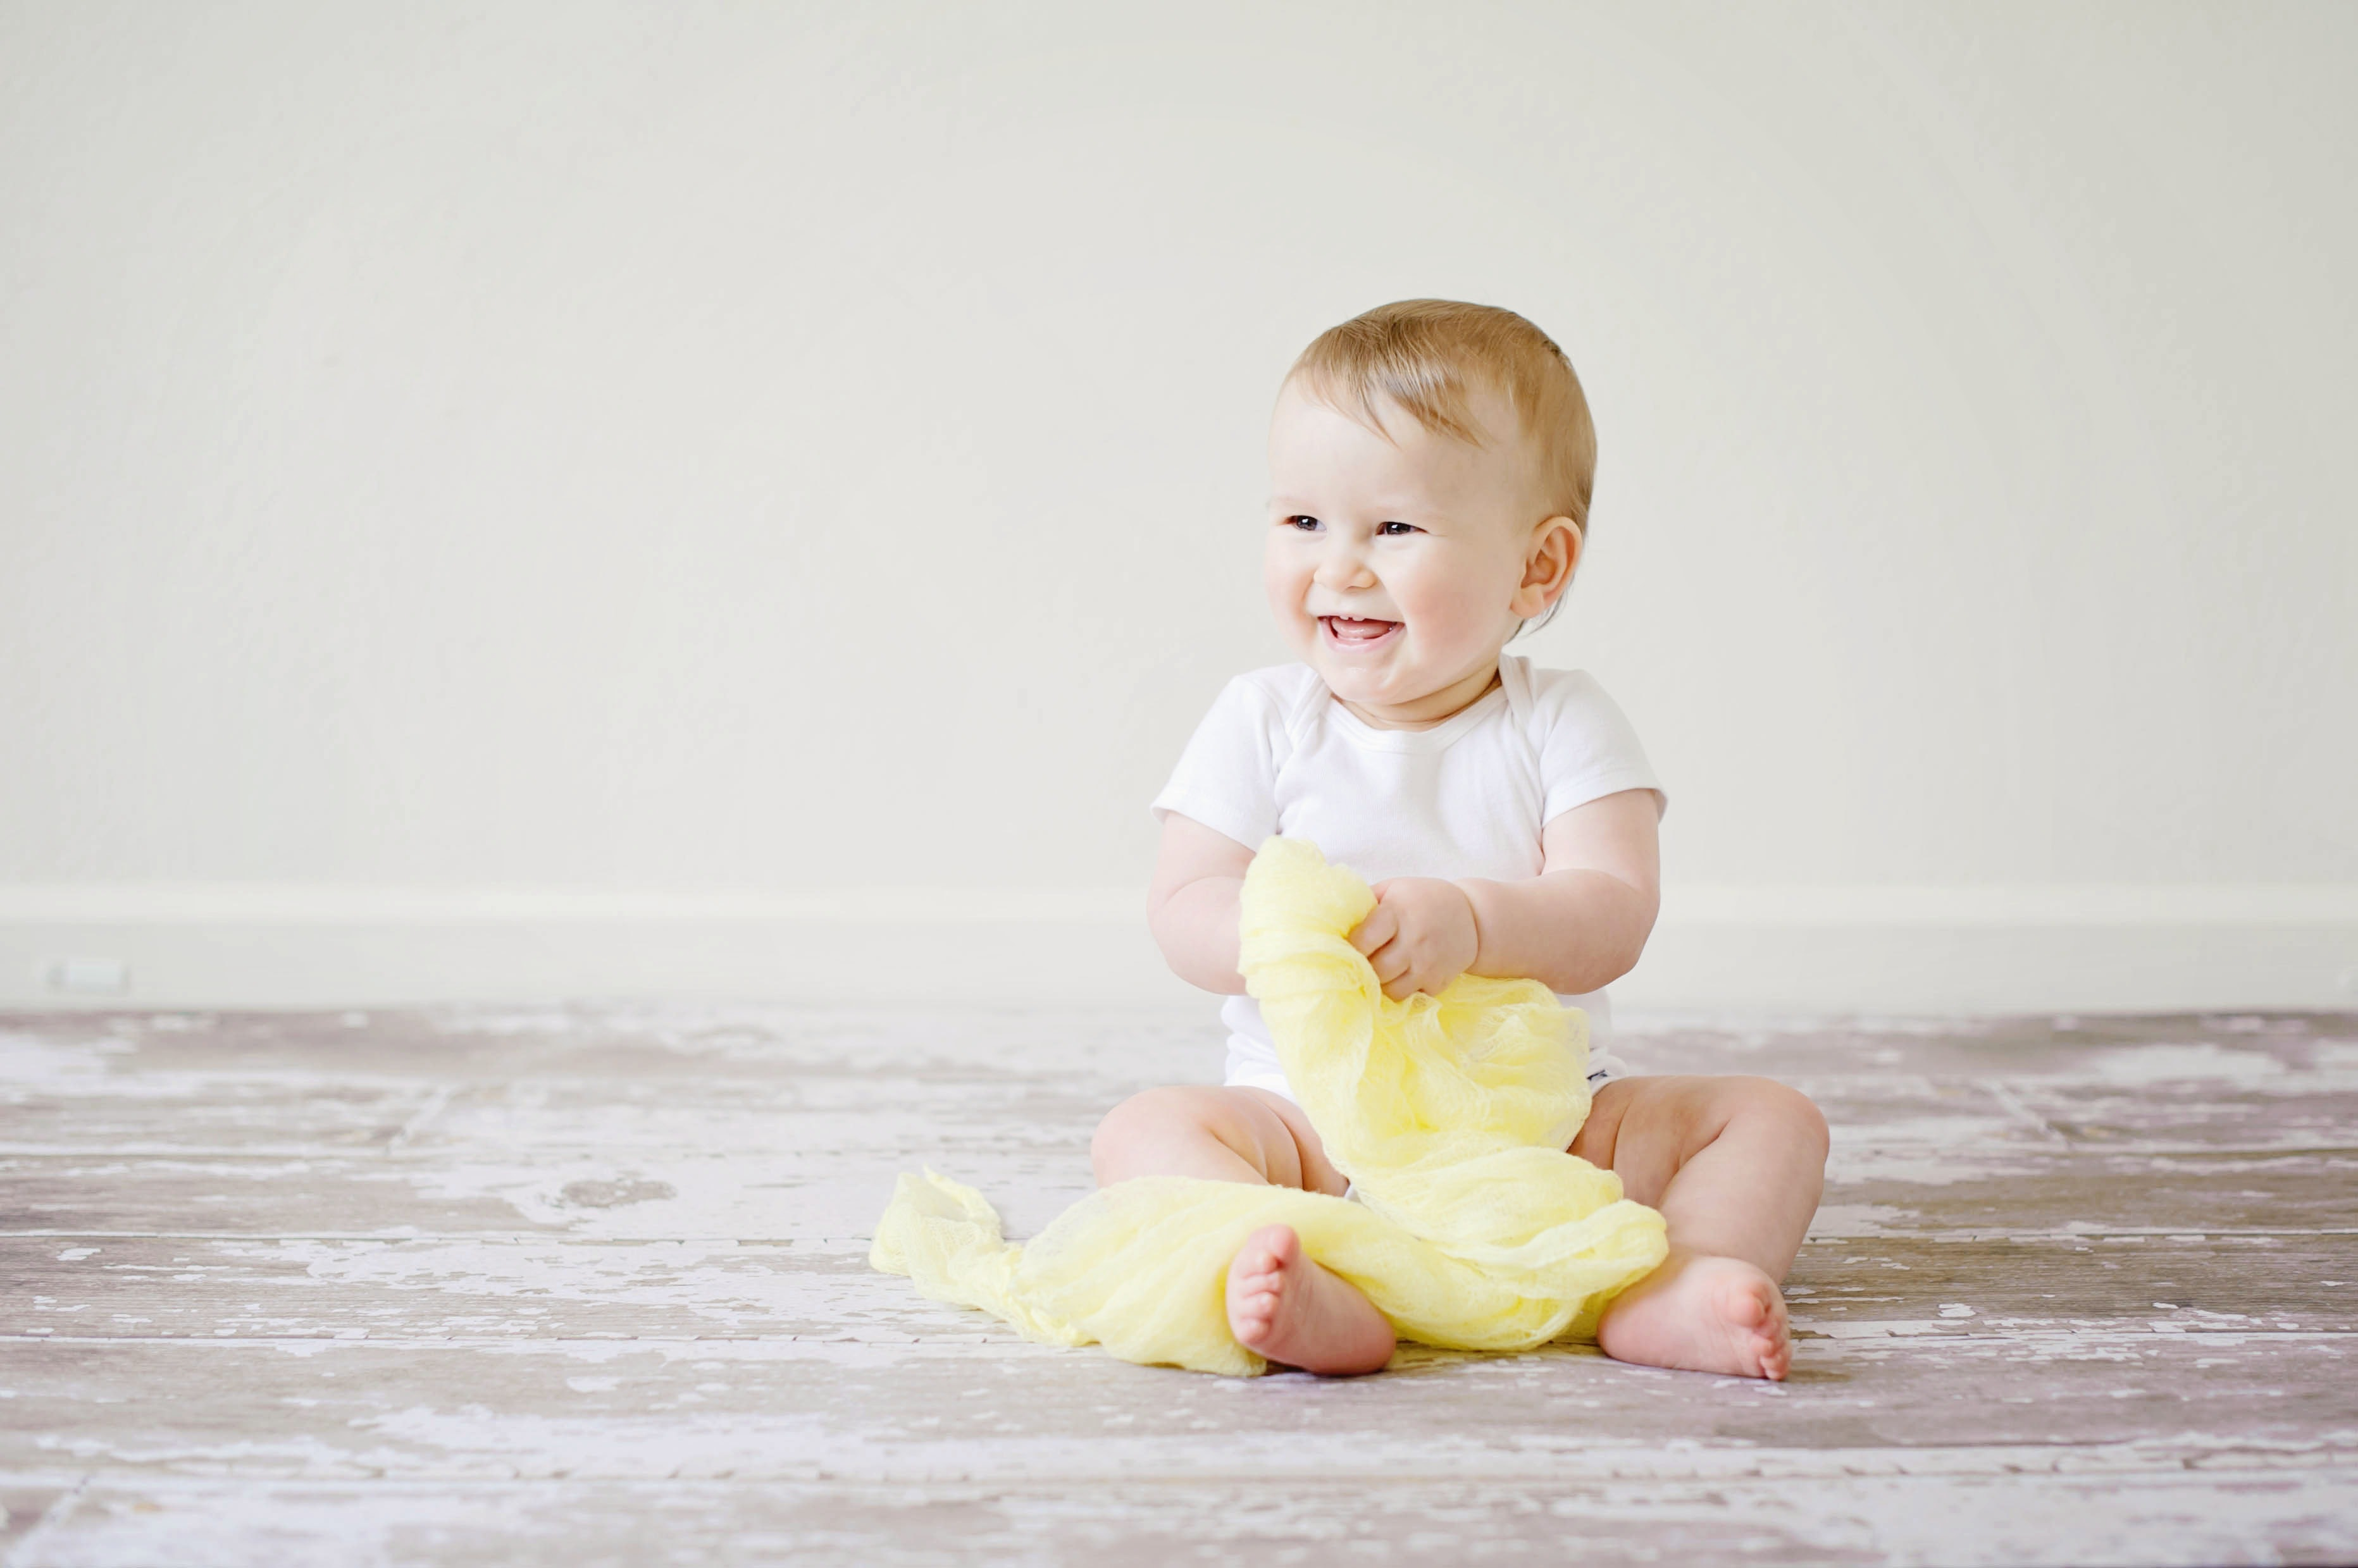 adorable-baby-cheerful-459953